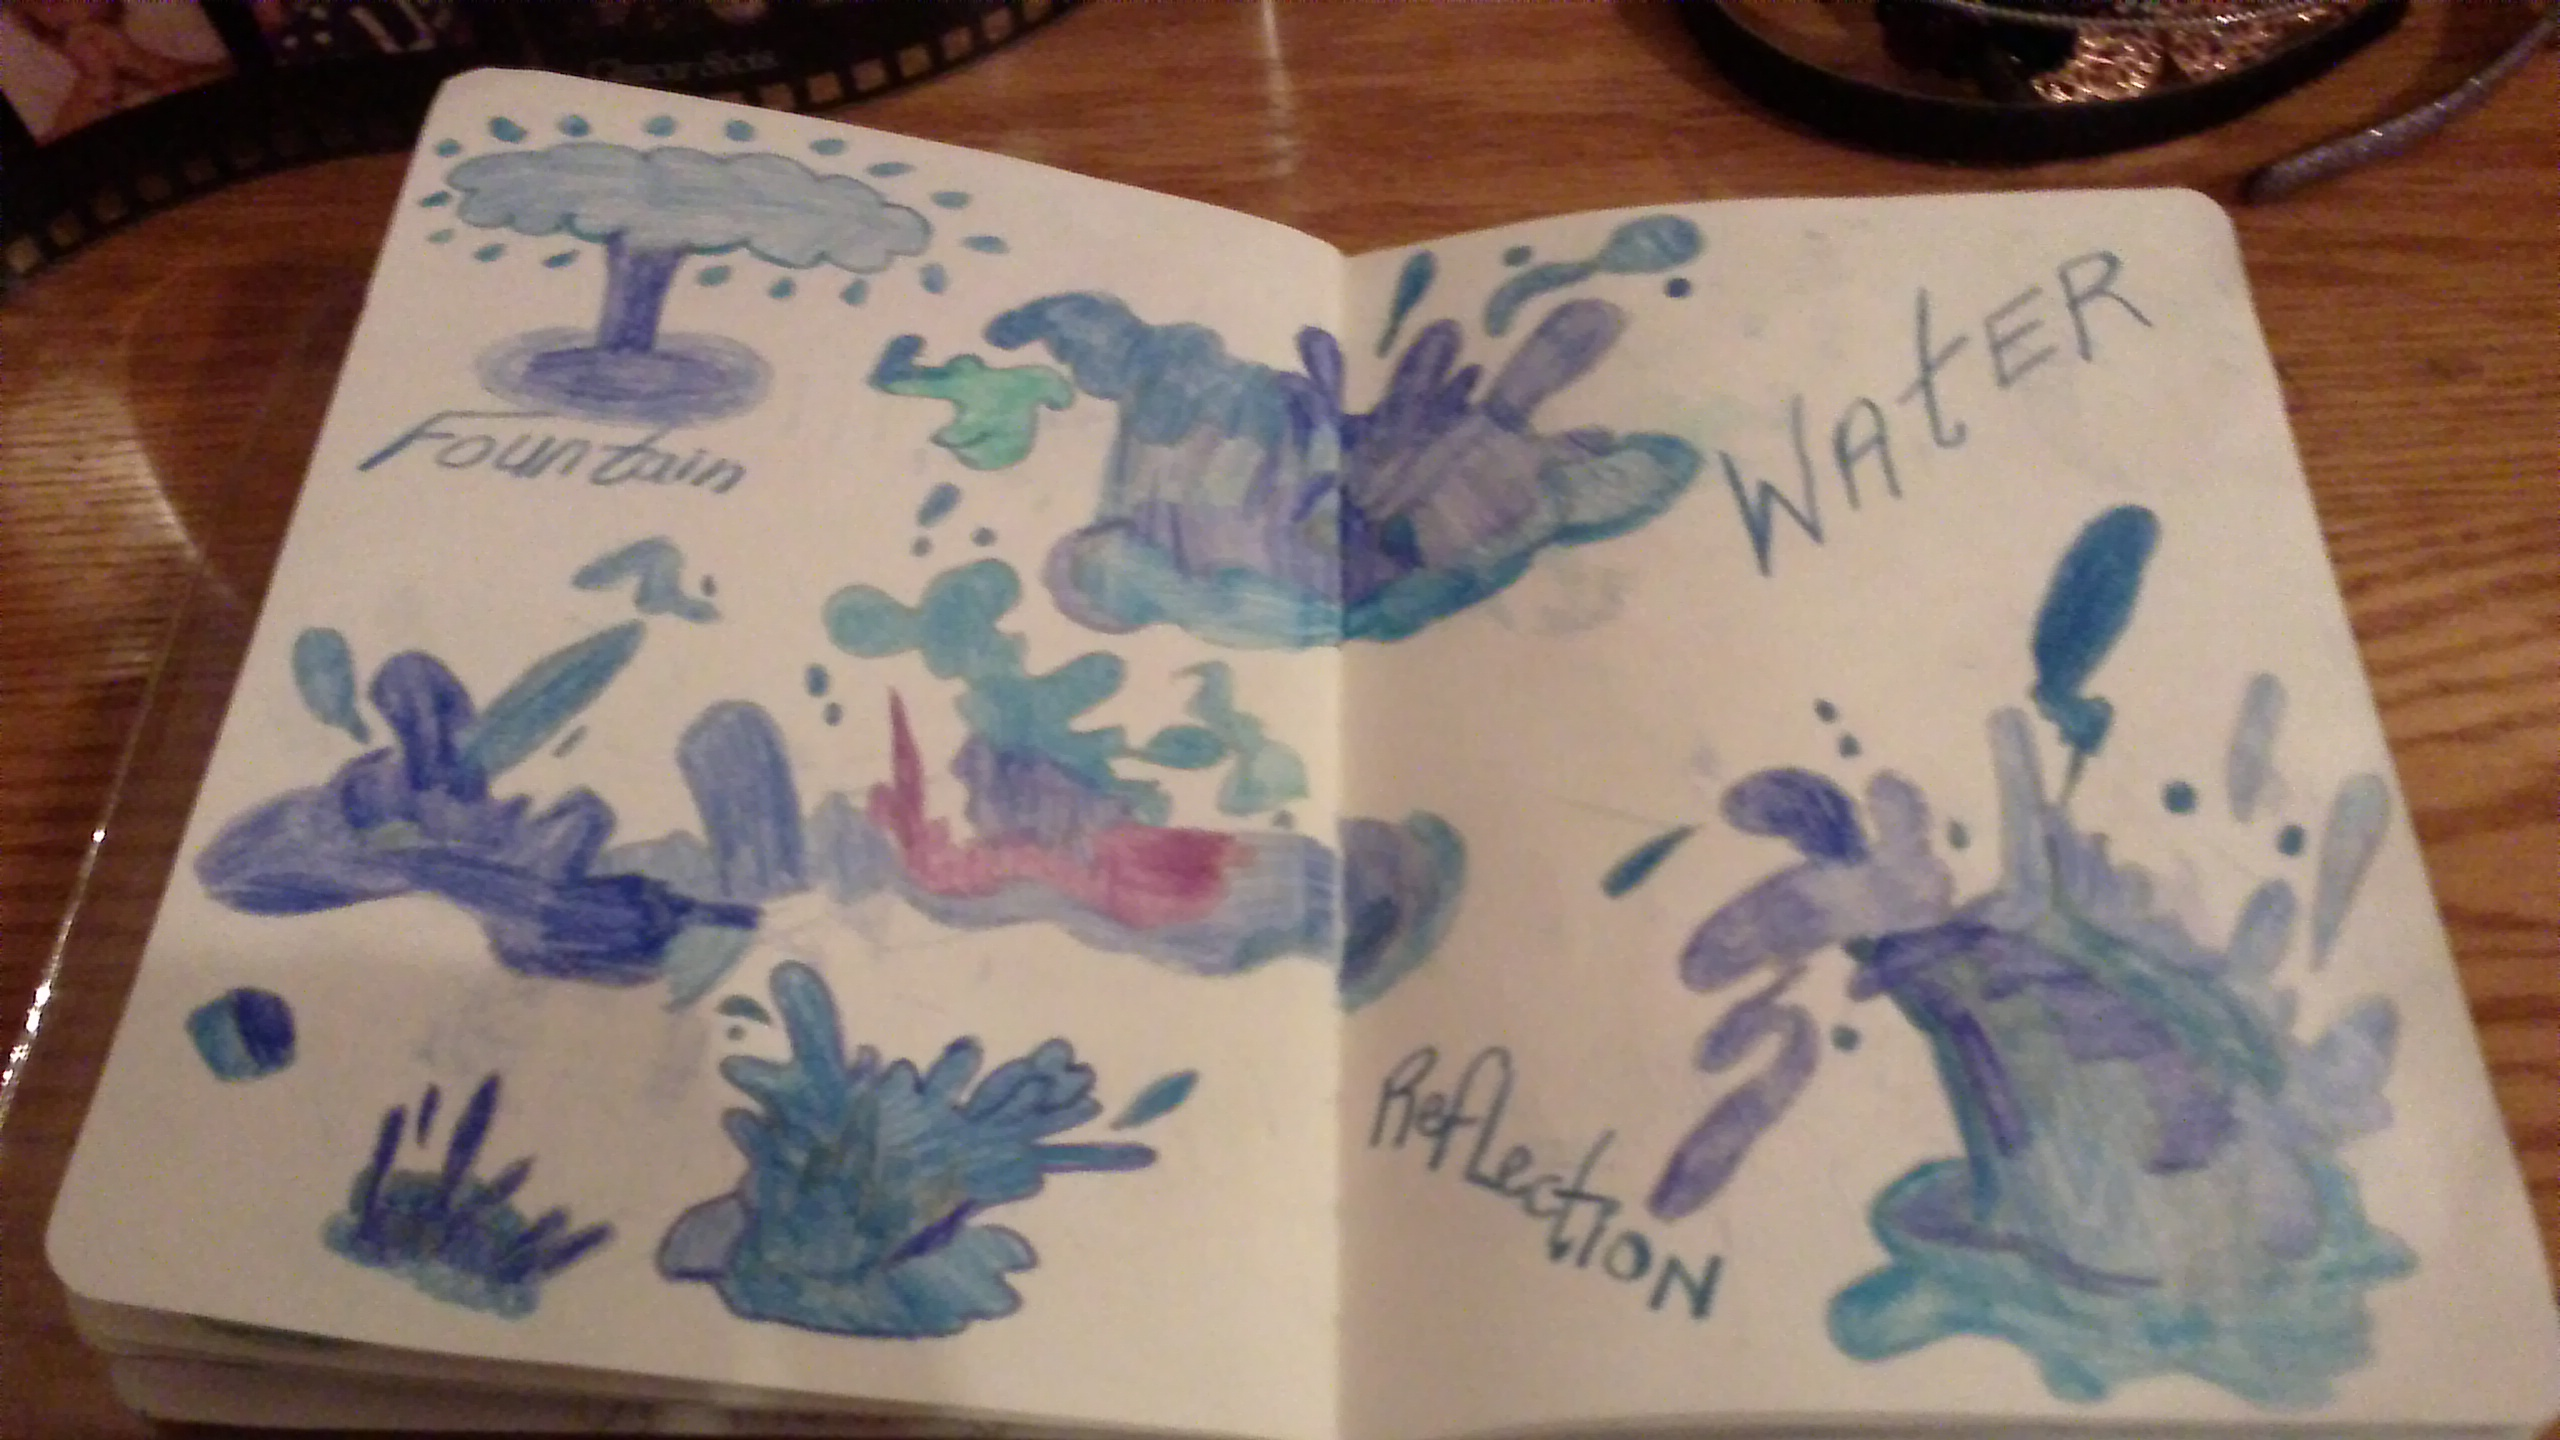 STOP MOTION DRAWN BY HAND, SPLASHING FUN WITH WATER